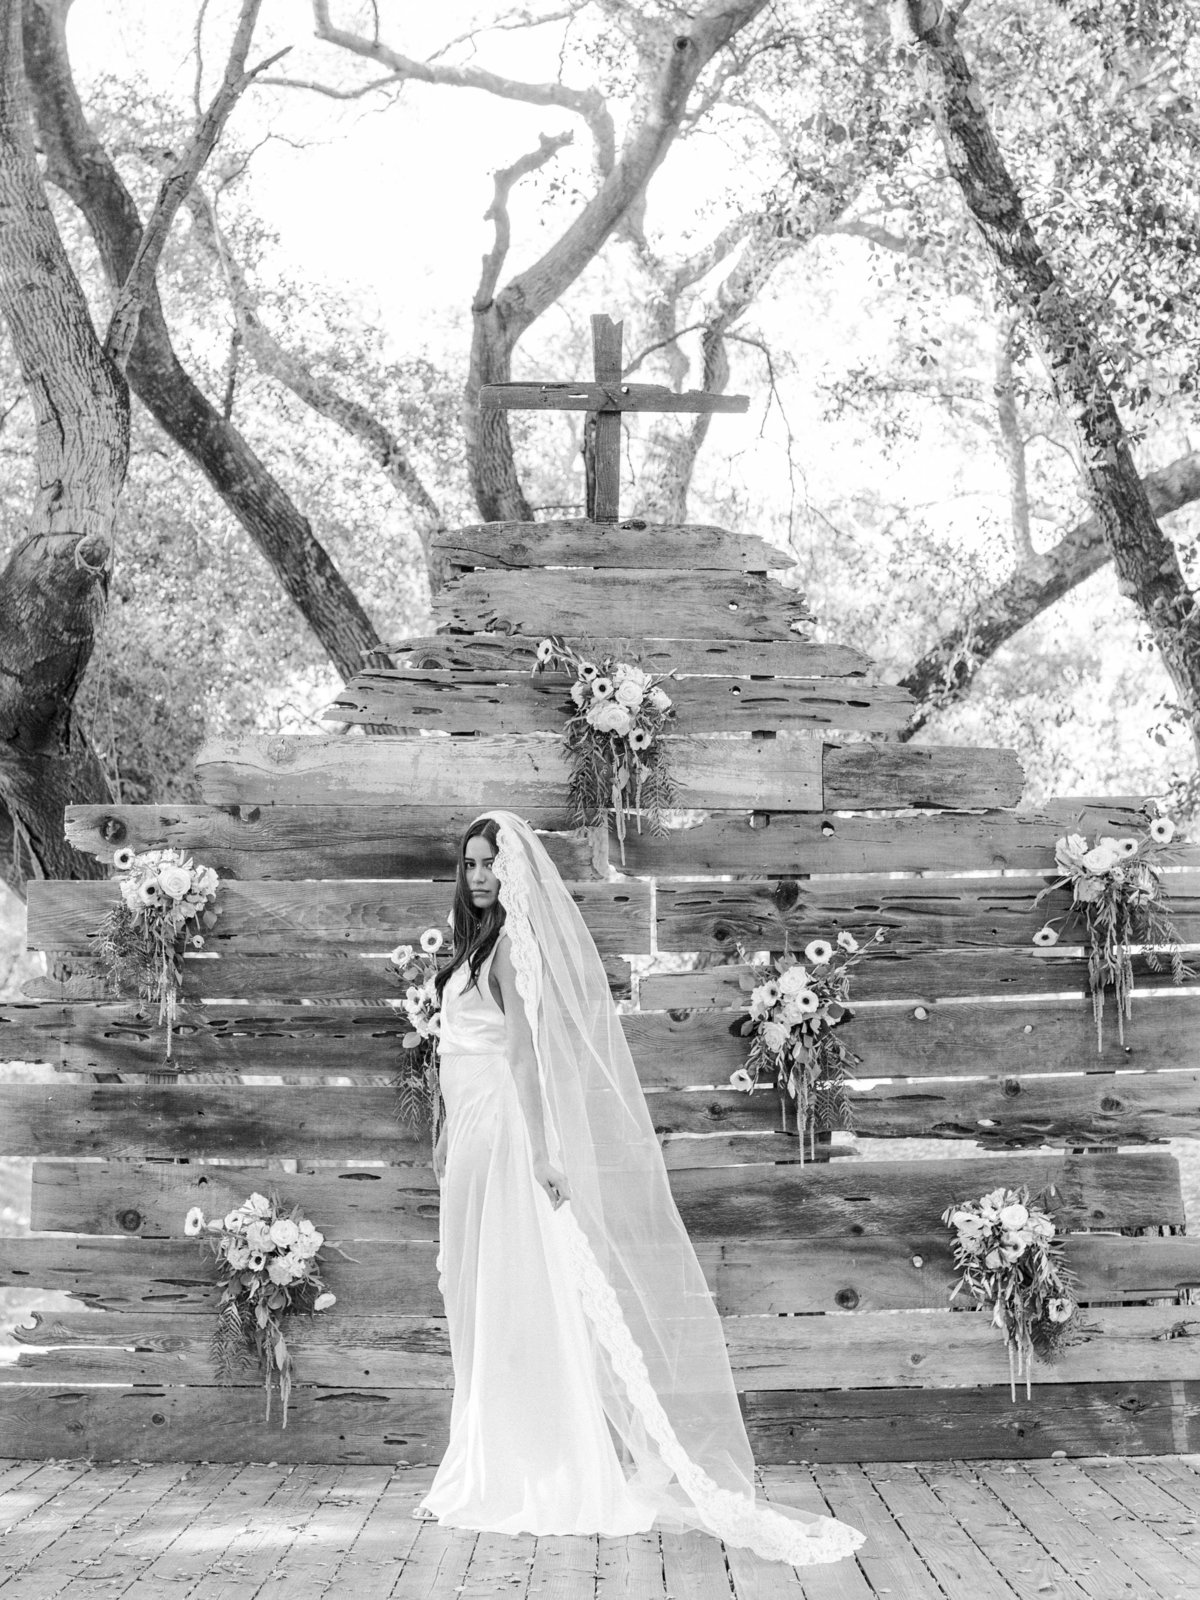 Babsie-Ly-Photography-Fine-Art-Film-Wedding-Bridal-Editorial-in-Hidden-Oaks-San-Diego-150